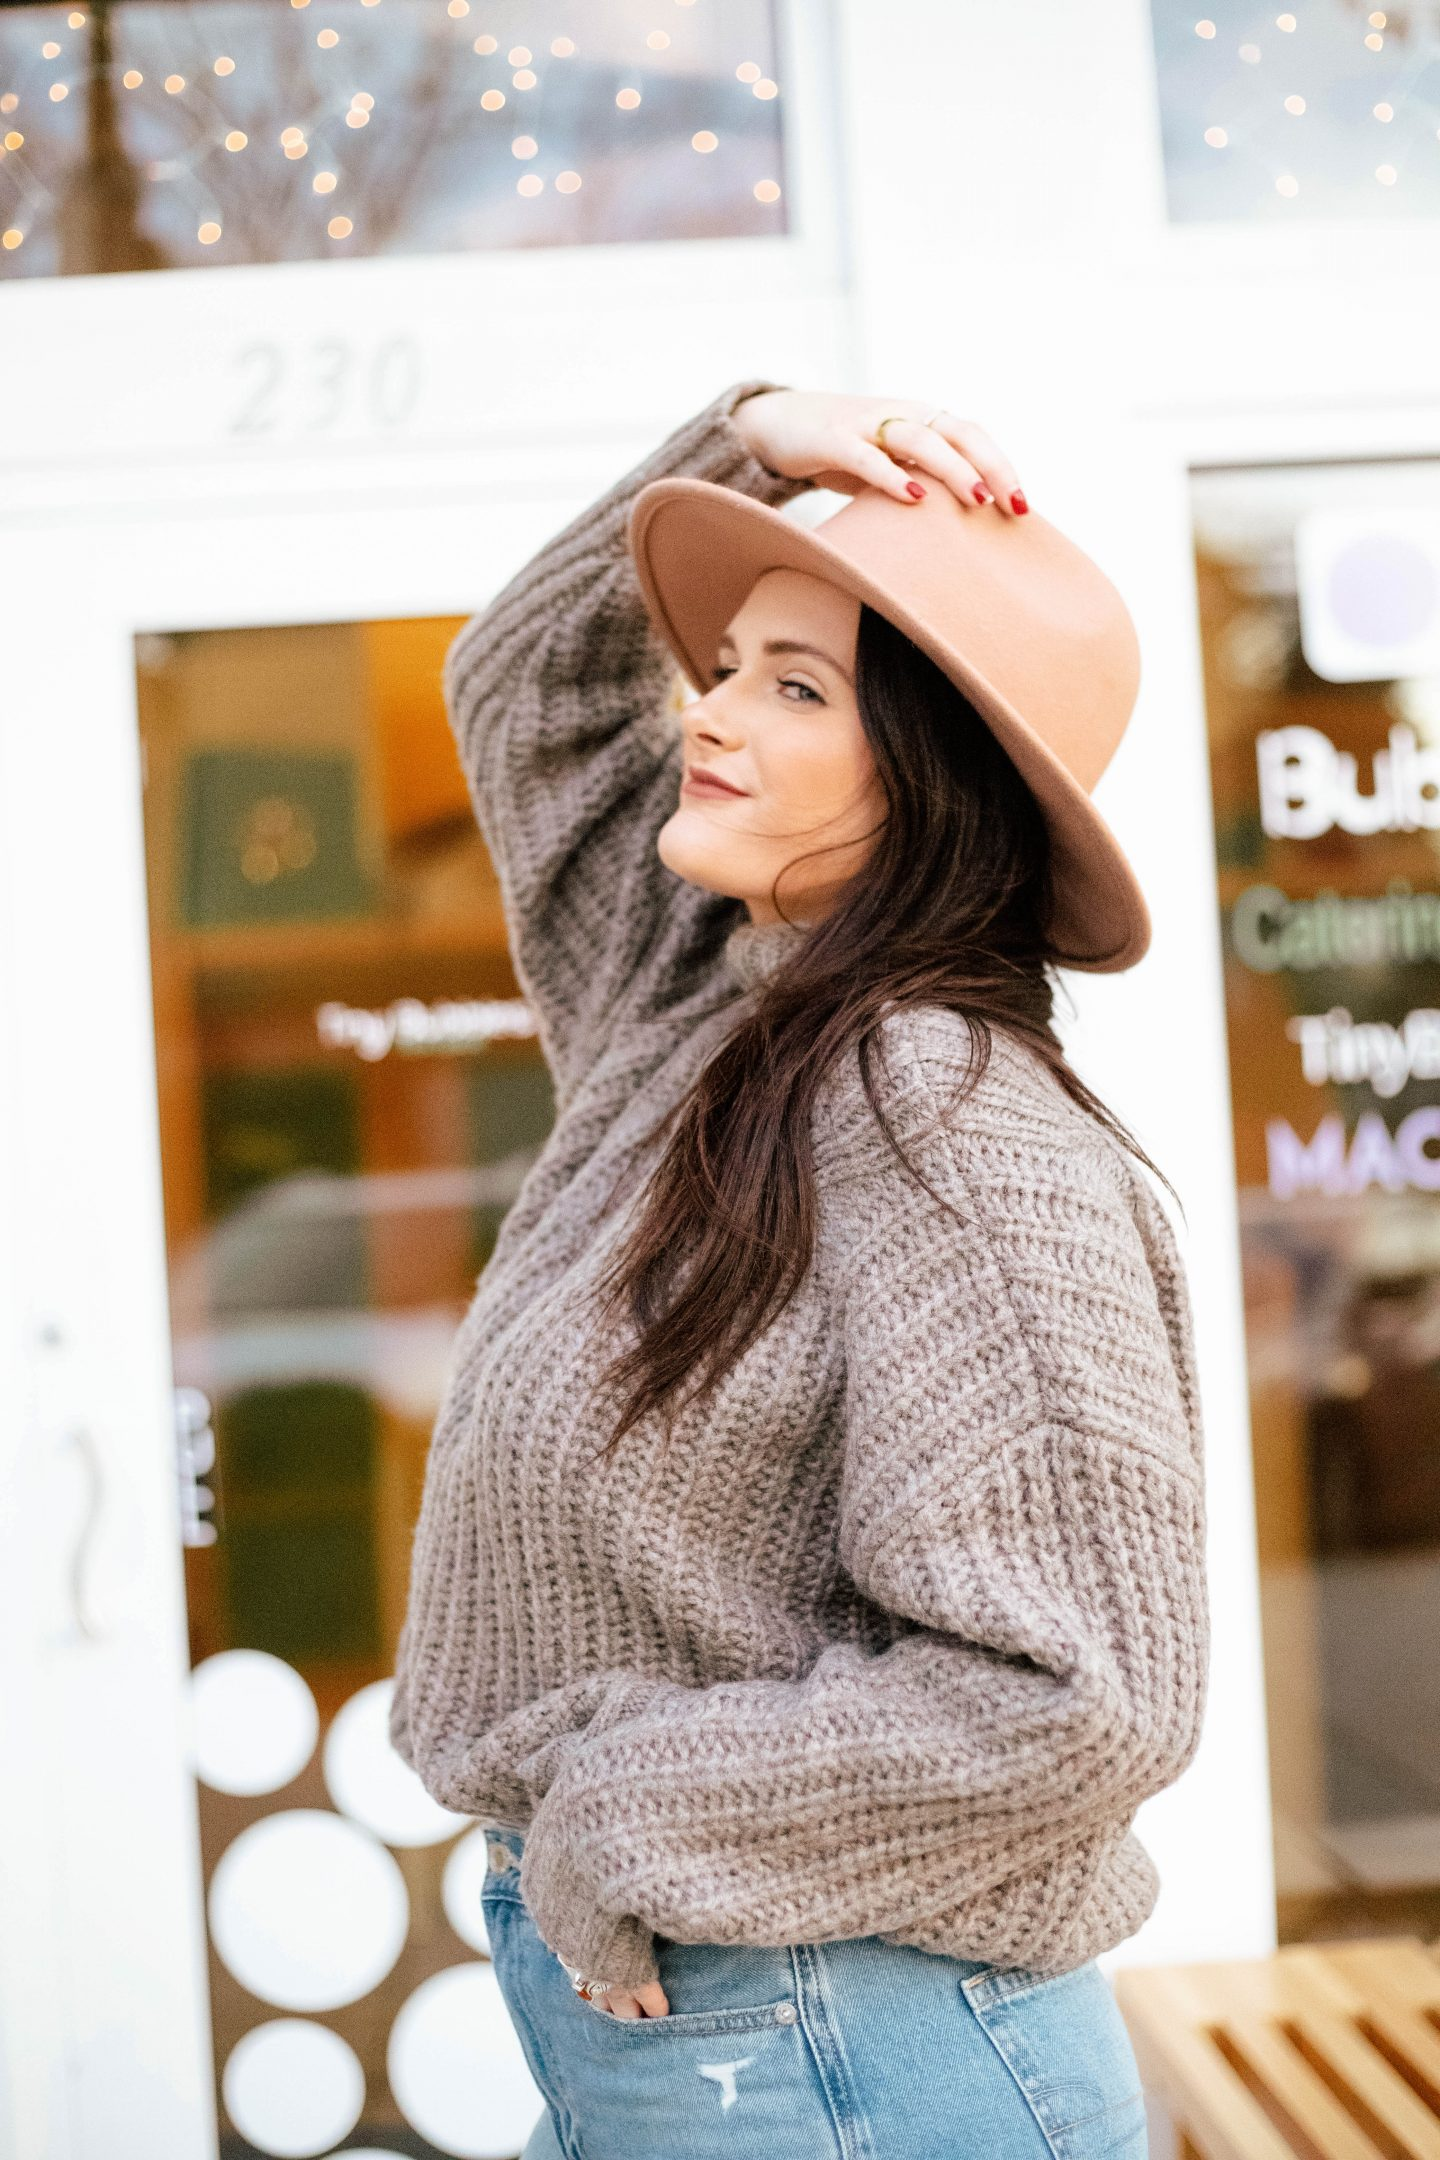 Why I Can't Stop Styling This Hat + Splurging On Items